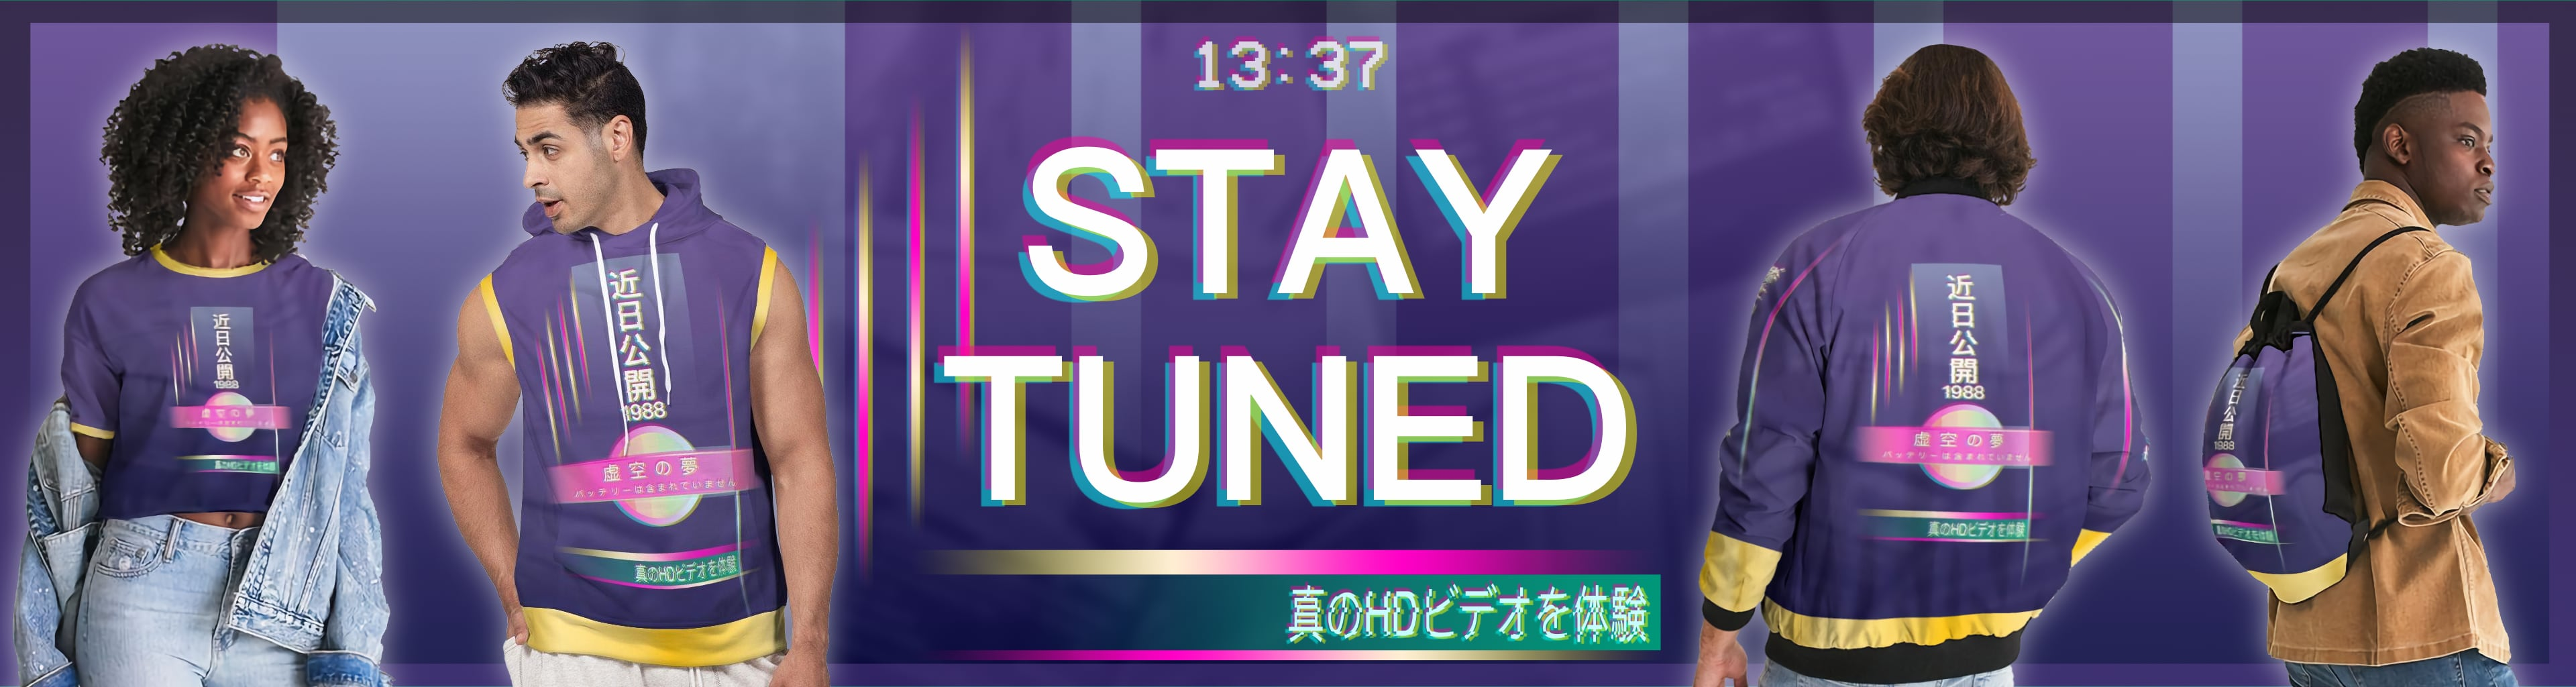 Stay Tuned Collection Banner